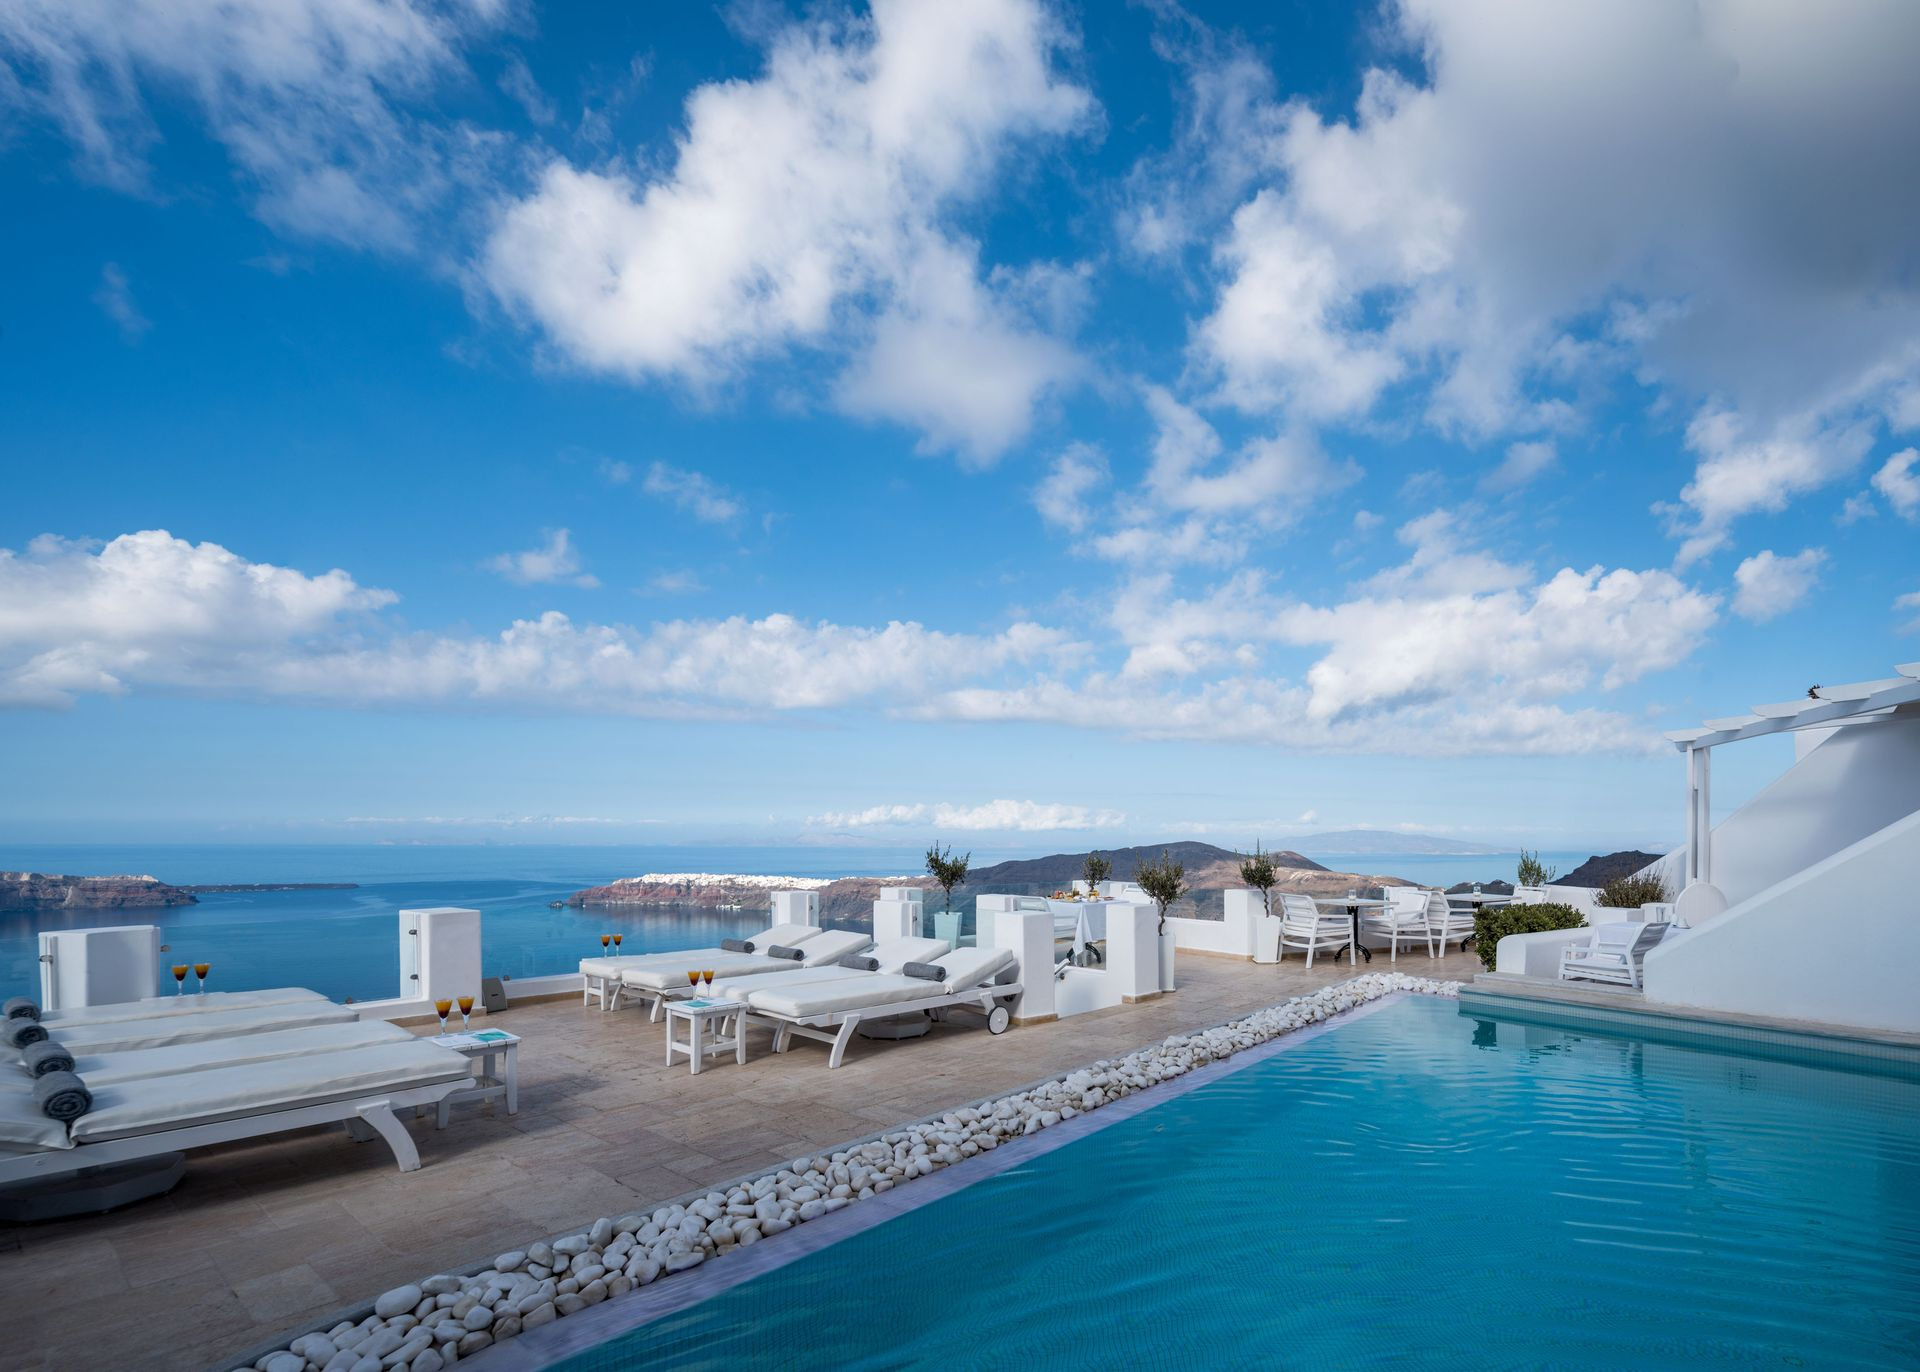 Above Blue Suites - Σαντορίνη ✦ 2 Ημέρες (1 Διανυκτέρευση) ✦ 2 άτομα ✦ Πρωινό ✦ έως 20/09/2020 ✦ Free WiFi